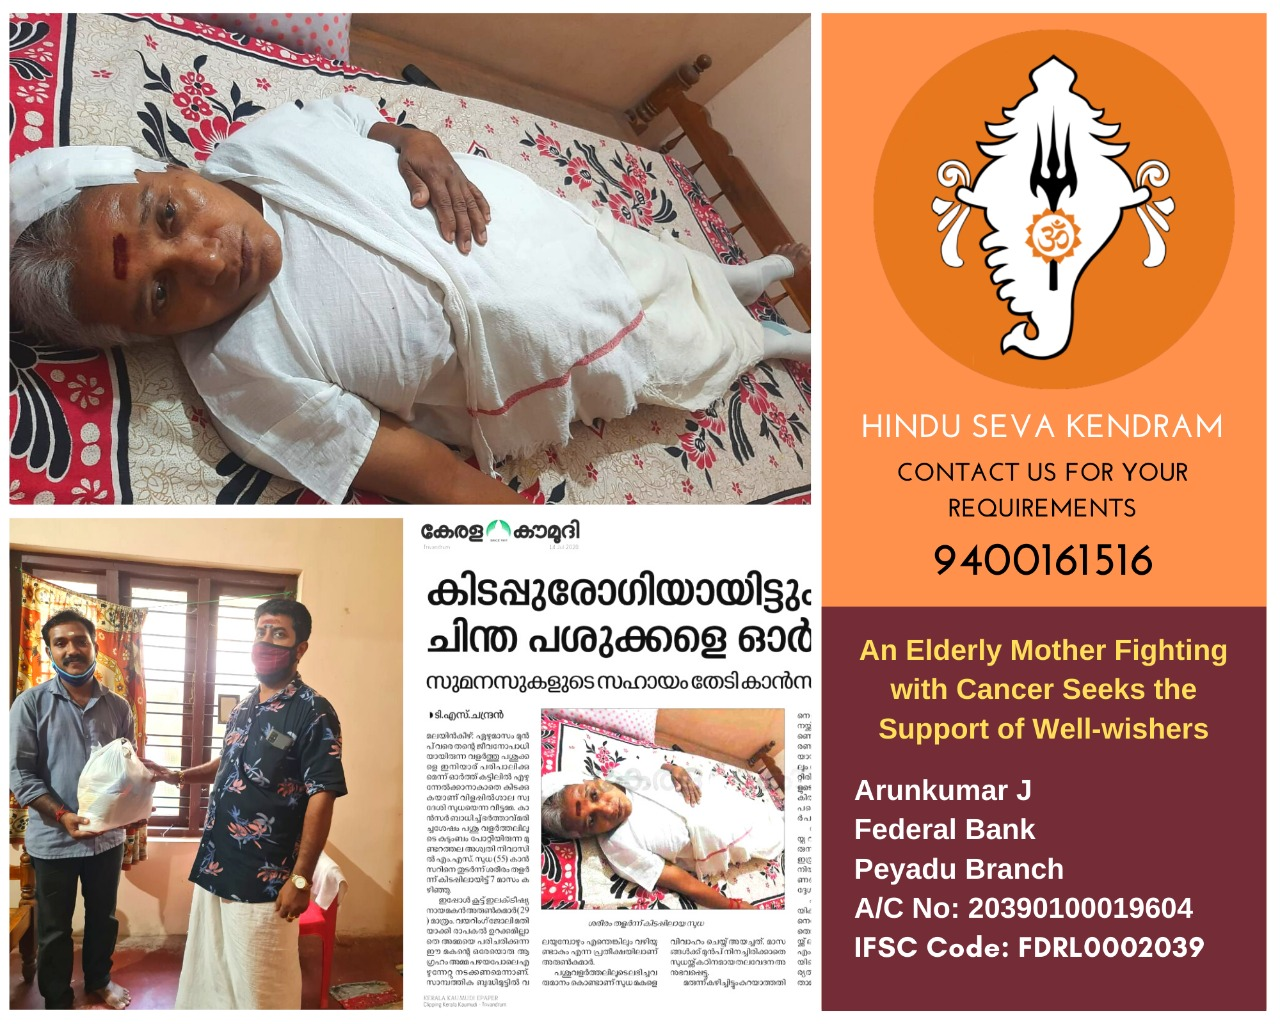 An Elderly Mother Fighting with Cancer Seeks the Support of Well-wishers.